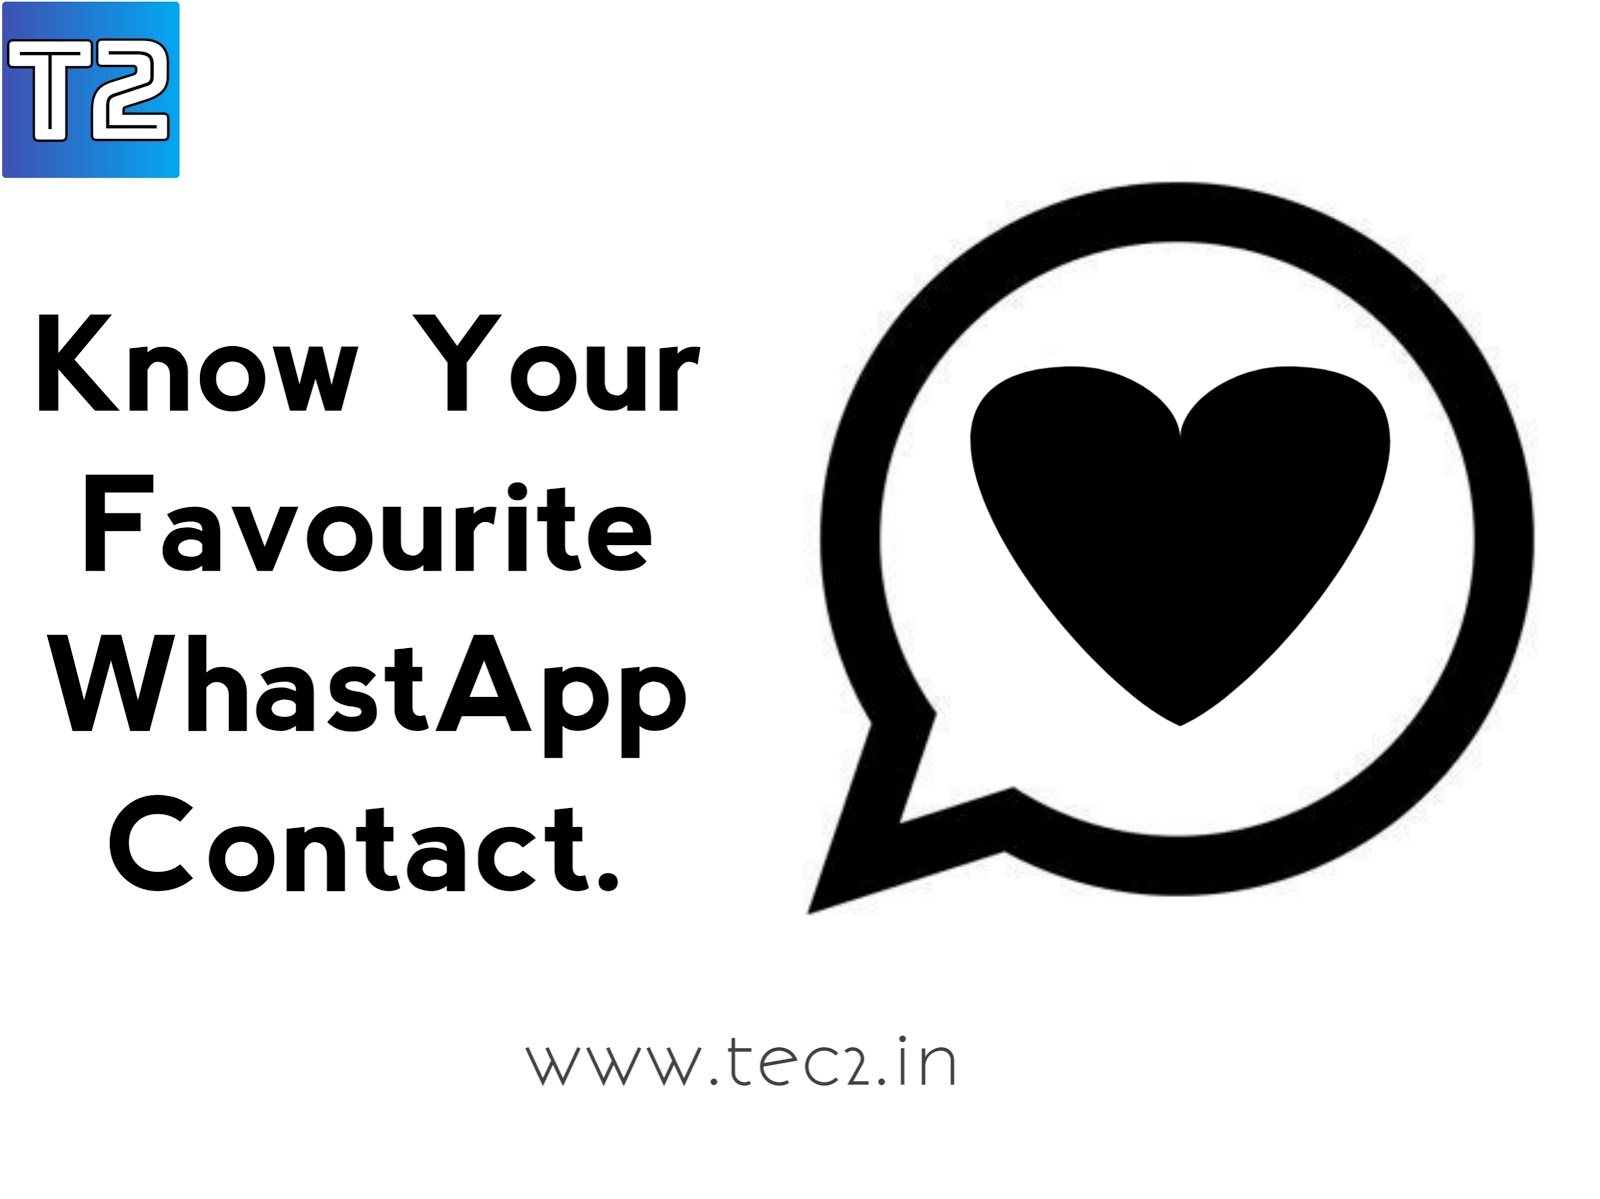 Find Out Your Favourite WhatsApp Contact.